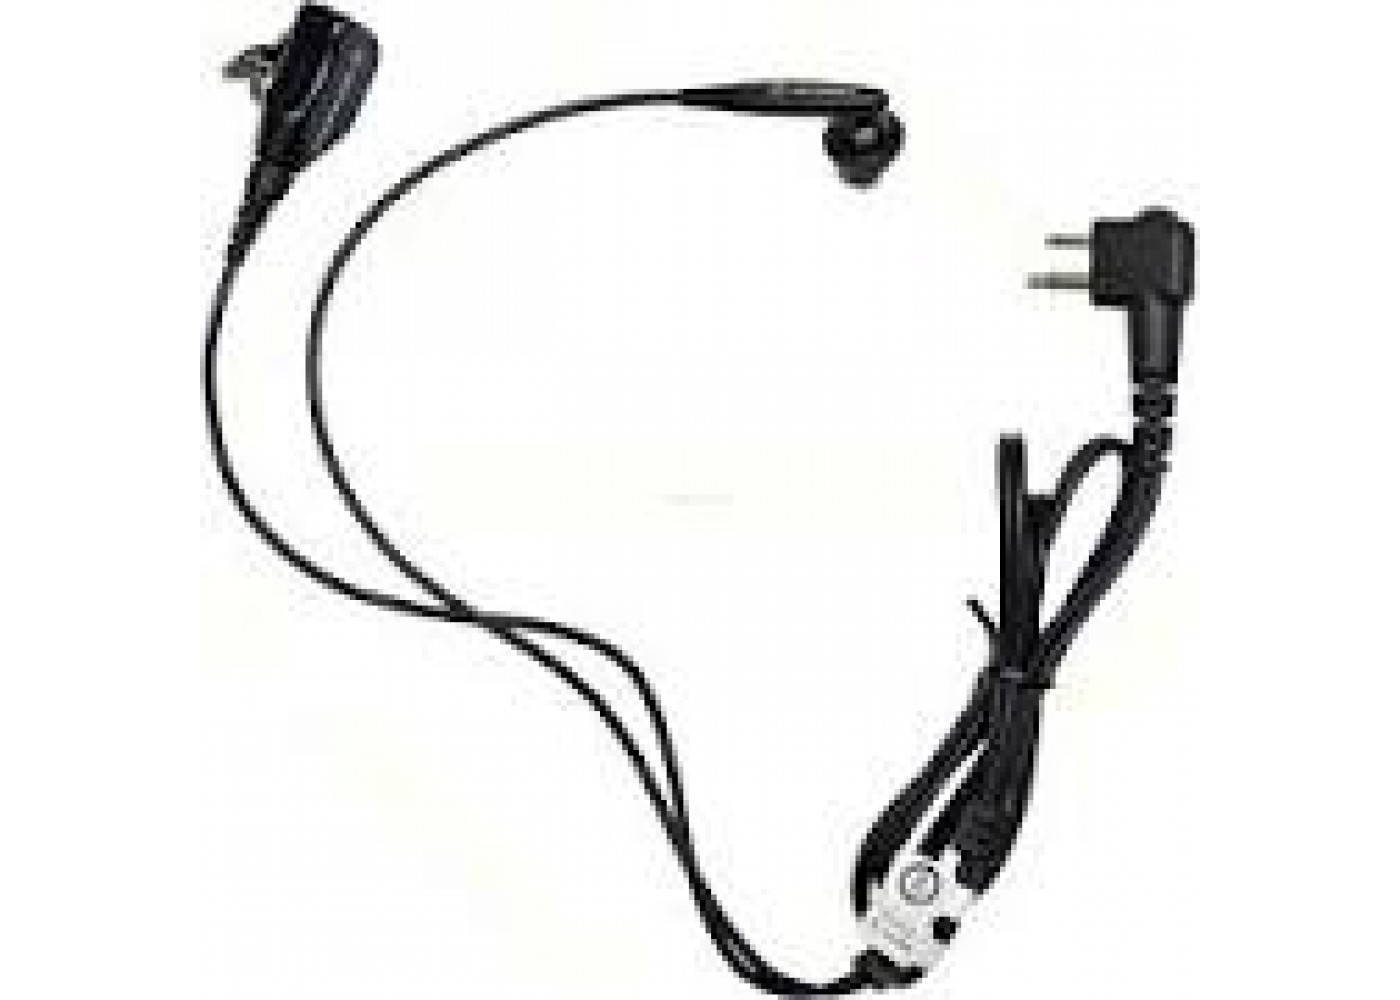 Pmln5733 Mag One Earbud With Inline Microphone And Push To Talk also 318629742368865986 together with Pmln6829 as well Motorola Pmln6533 Earbud Style Earpiece With Ptt likewise Hln9328c Cable External Alarm Relay. on motorola radios fire